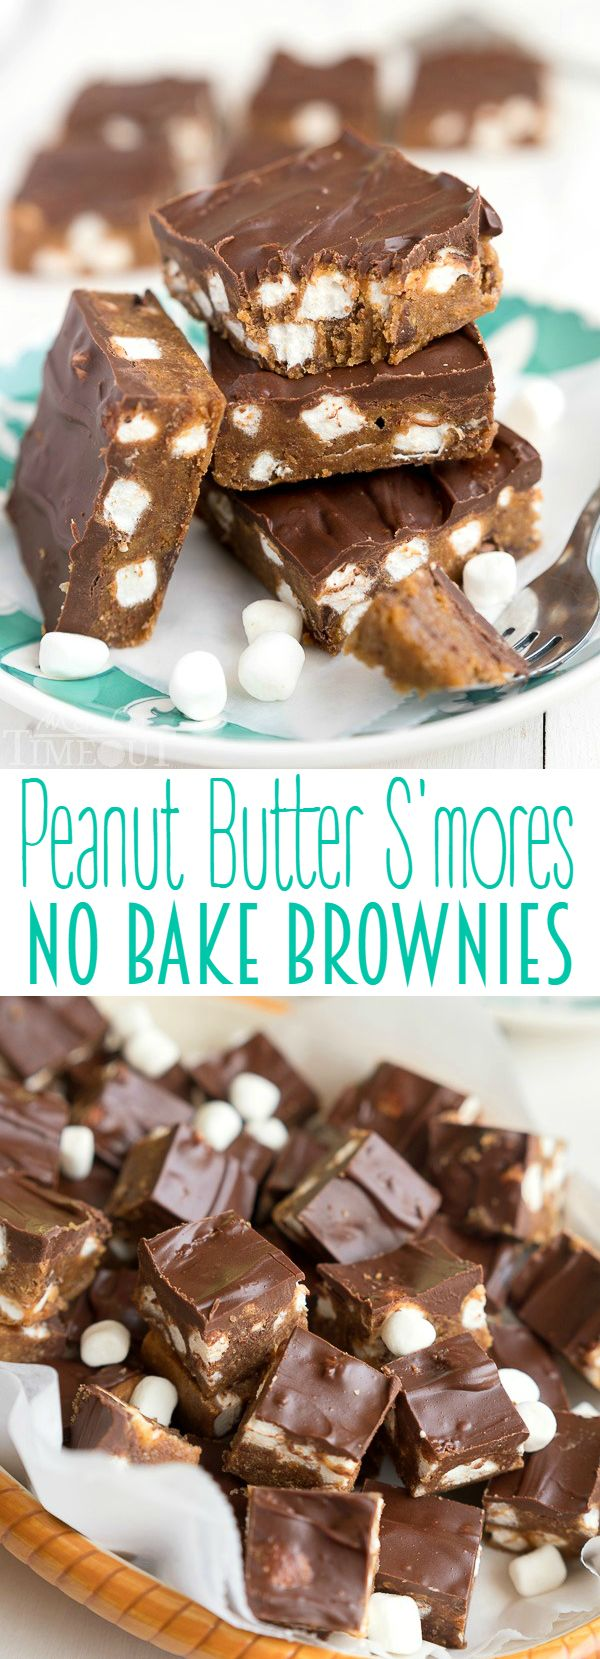 Decadent Peanut Butter S'mores NO BAKE Brownies can be whipped up in a jiffy and are just perfect for the hot summer months! | Peanut Butter S'mores No Bake Brownies on MyRecipeMagic.com